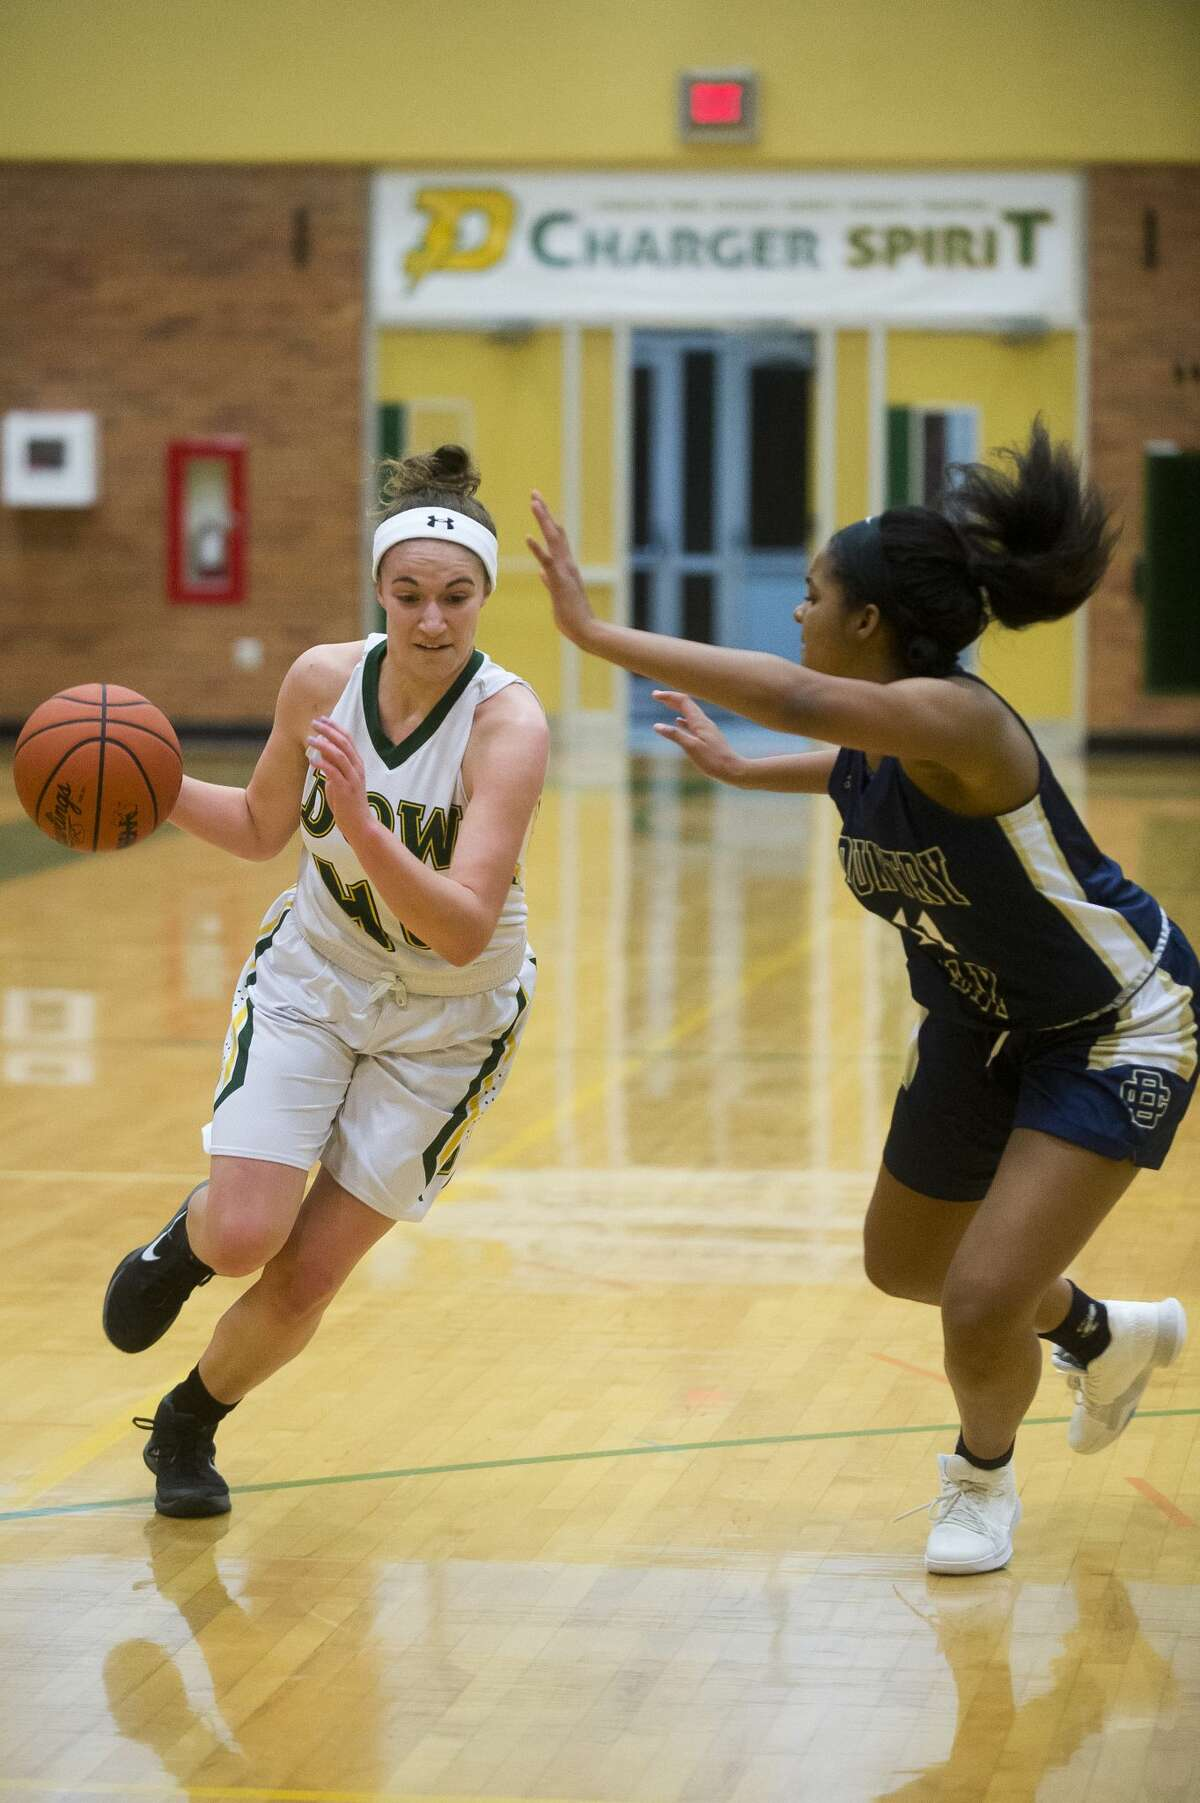 Dow junior Charis Queary dribbles down the court during the Chargers' game against Detroit Country Day on Friday, Dec. 22, 2017 at H. H. Dow High School. (Katy Kildee/kkildee@mdn.net)